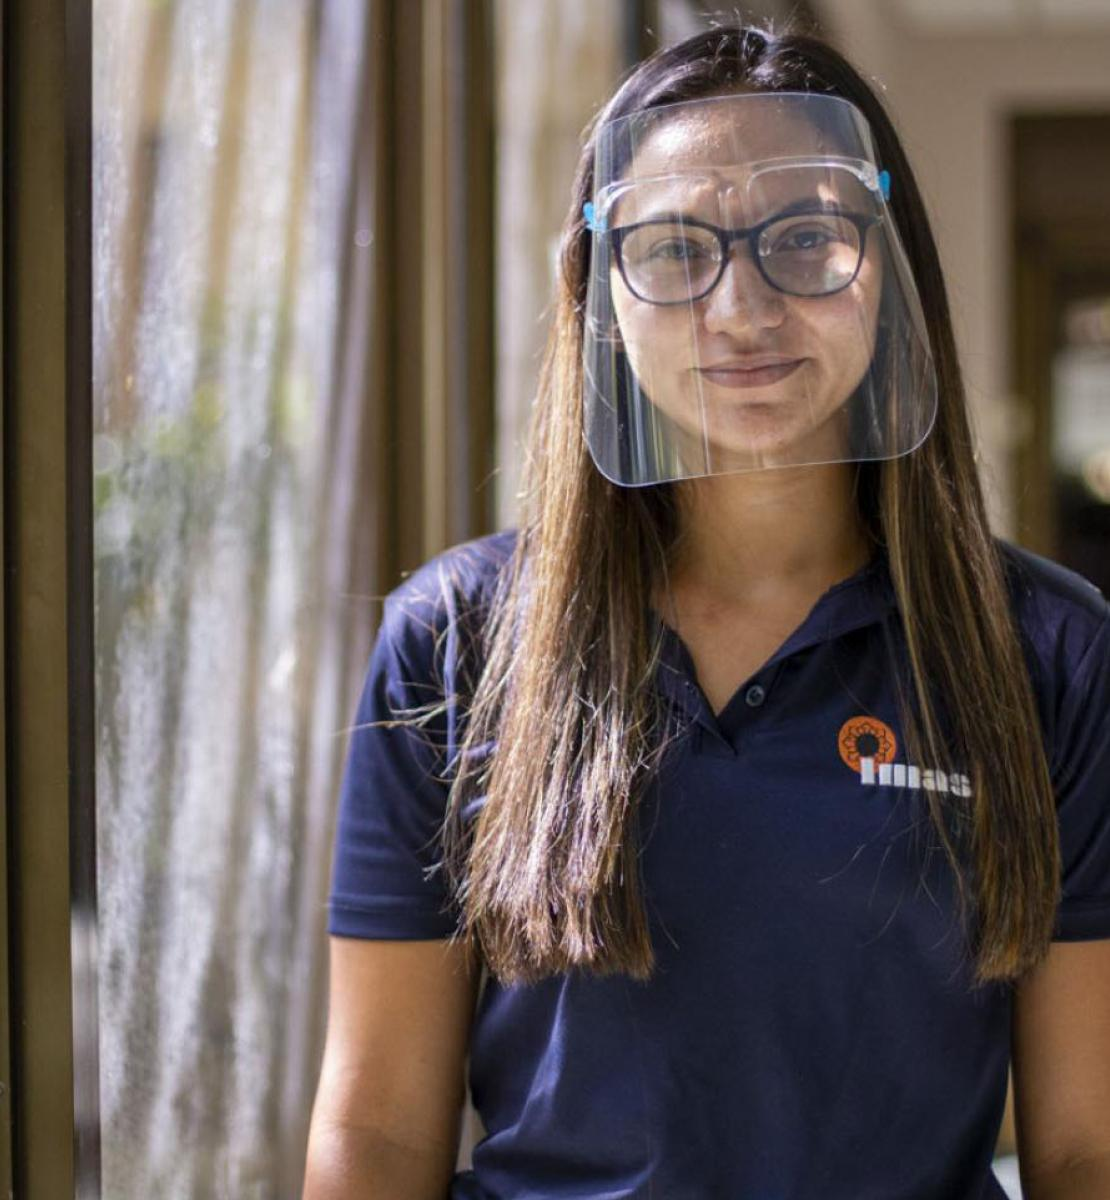 Gabriela Gamboa stands by an glass door wearing a protective face shield.